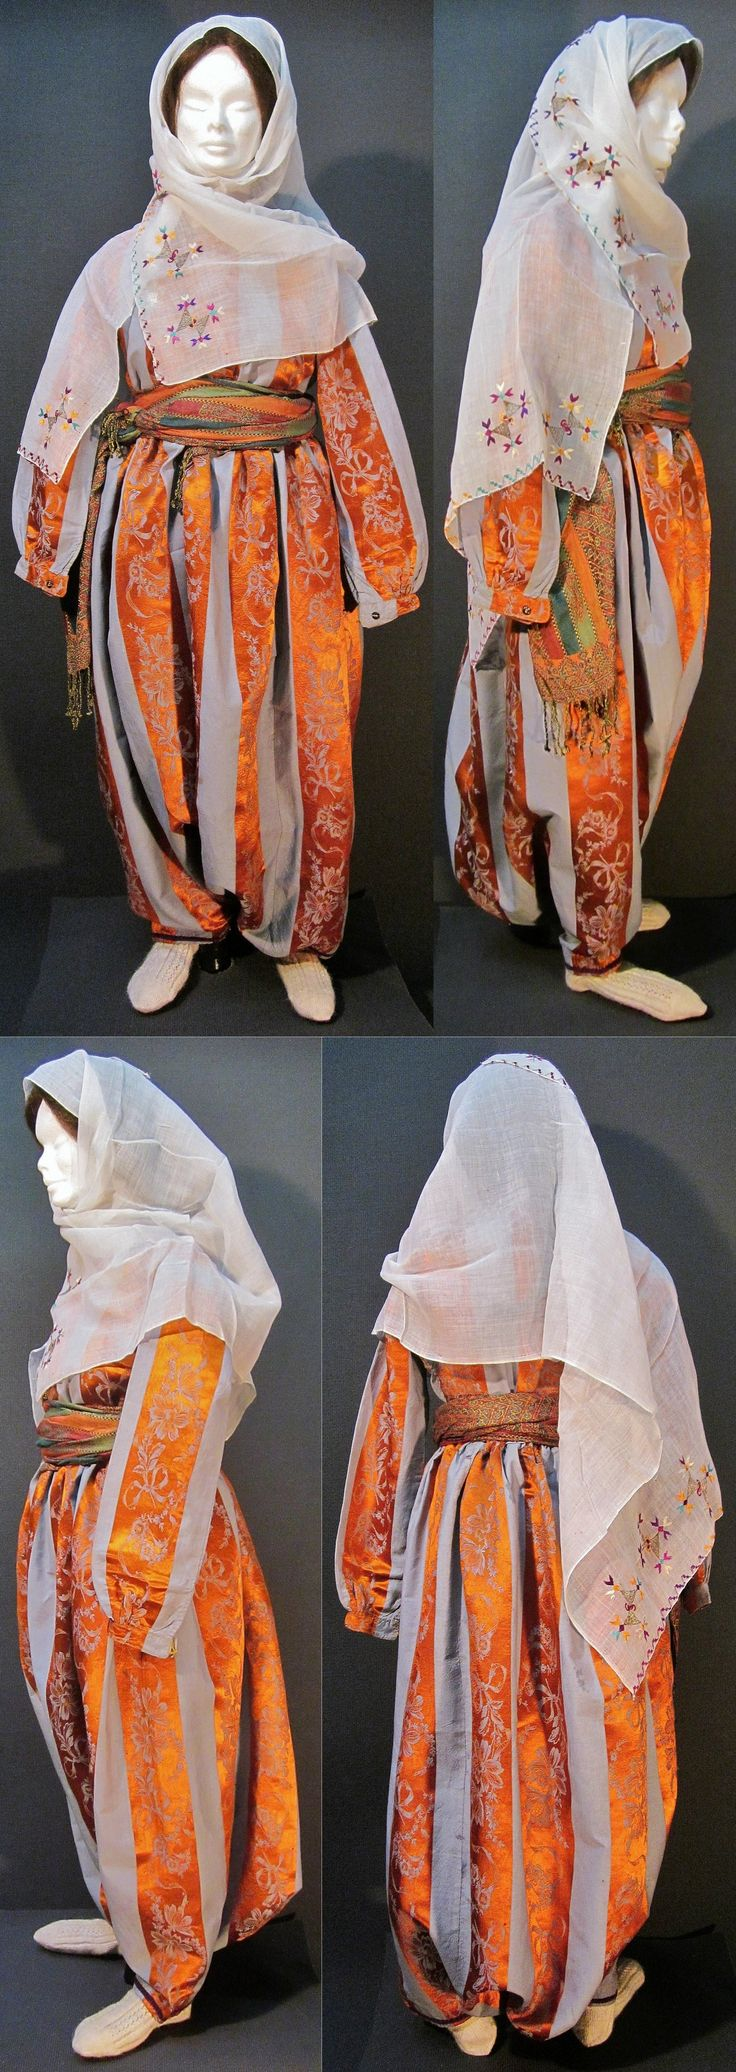 A traditional daily costume from the Konya province.  Middle-class urban style, worn at home, ca. 1900-1925.  Containing: a silk ensemble ('gömlek'/shirt + 'şalvar'/baggy trousers),  a large embroidered 'yazma' (headscarf) and a woven 'kuşak' (waist band).  All items are from the same period. (Kavak Costume Collection - Antwerpen/Belgium).